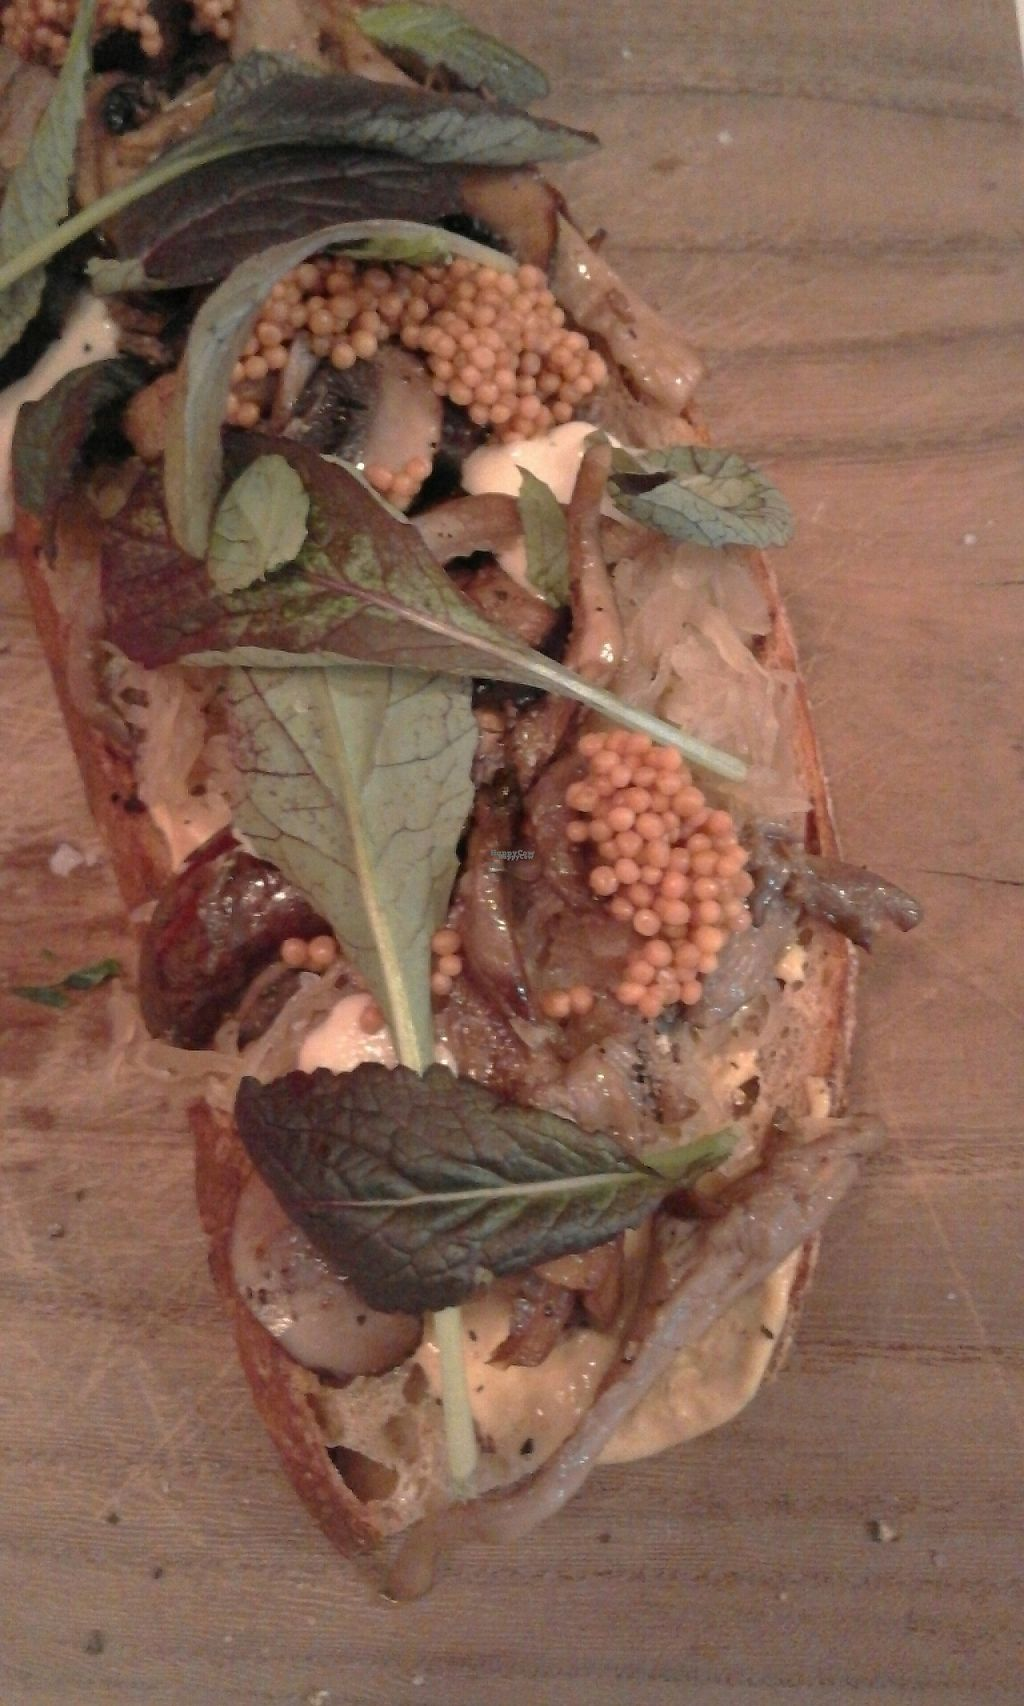 """Photo of Broei  by <a href=""""/members/profile/v_mdj"""">v_mdj</a> <br/>sandwich with myshrooms, sauerkraut and vegan cashewcream (instead of mayo) <br/> December 24, 2016  - <a href='/contact/abuse/image/78567/204542'>Report</a>"""